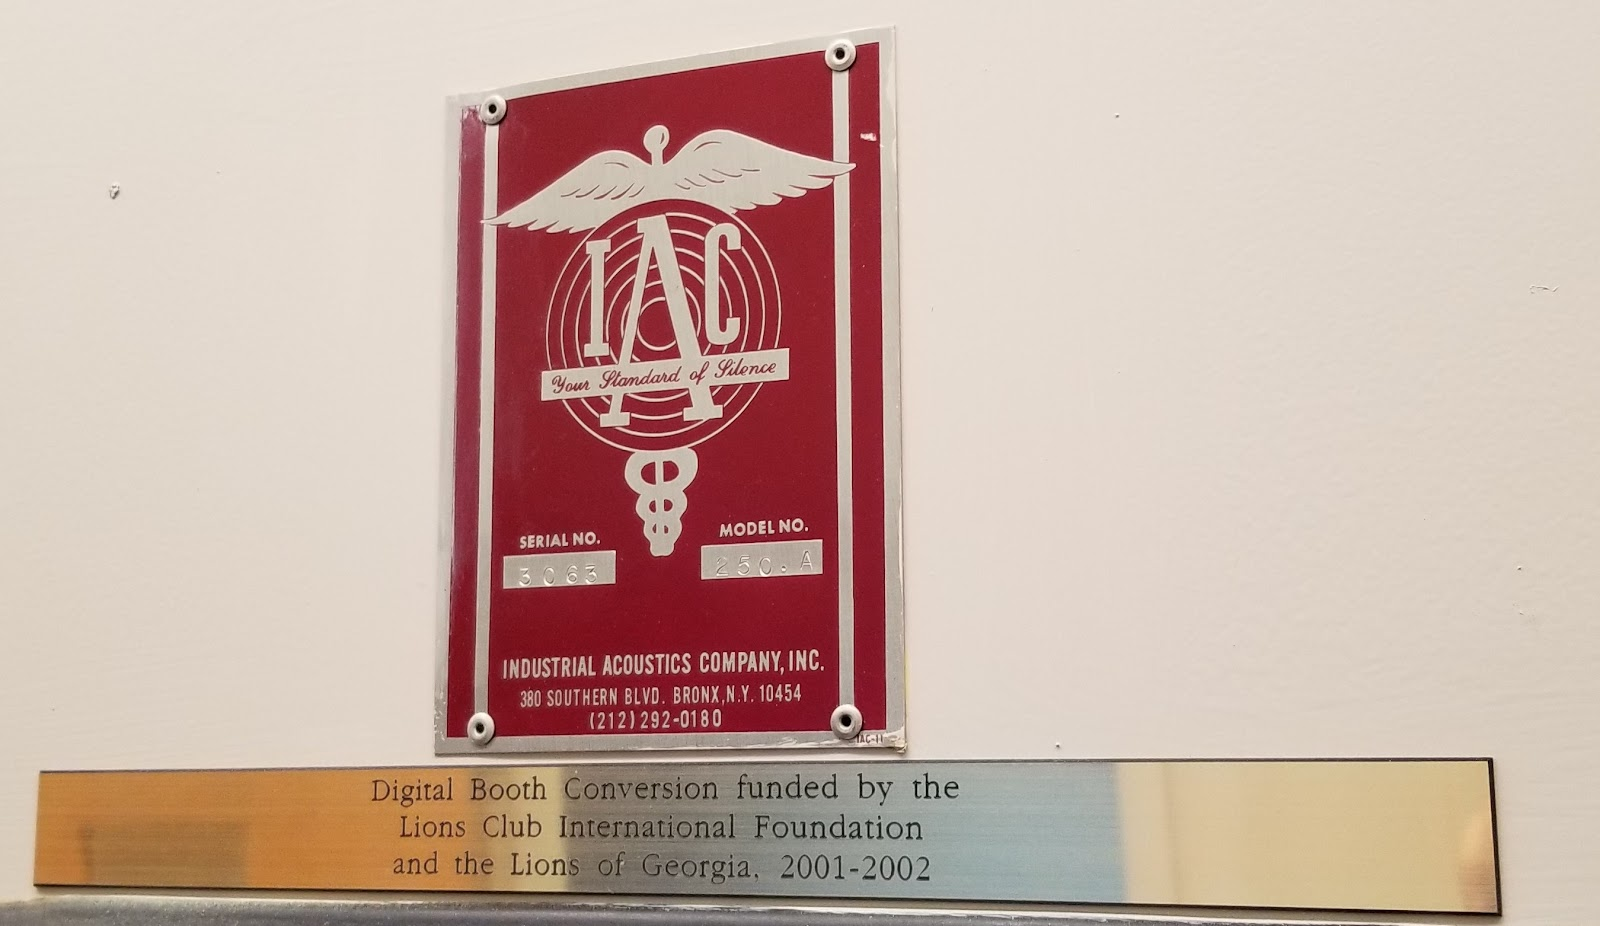 Two plaques on a recording booth door:  (1) manufacturer's logo and contact information; (2) Digital Booth Converrsion funded by the Lions Club International Foundation and the Lions of Georgia, 2001-2002